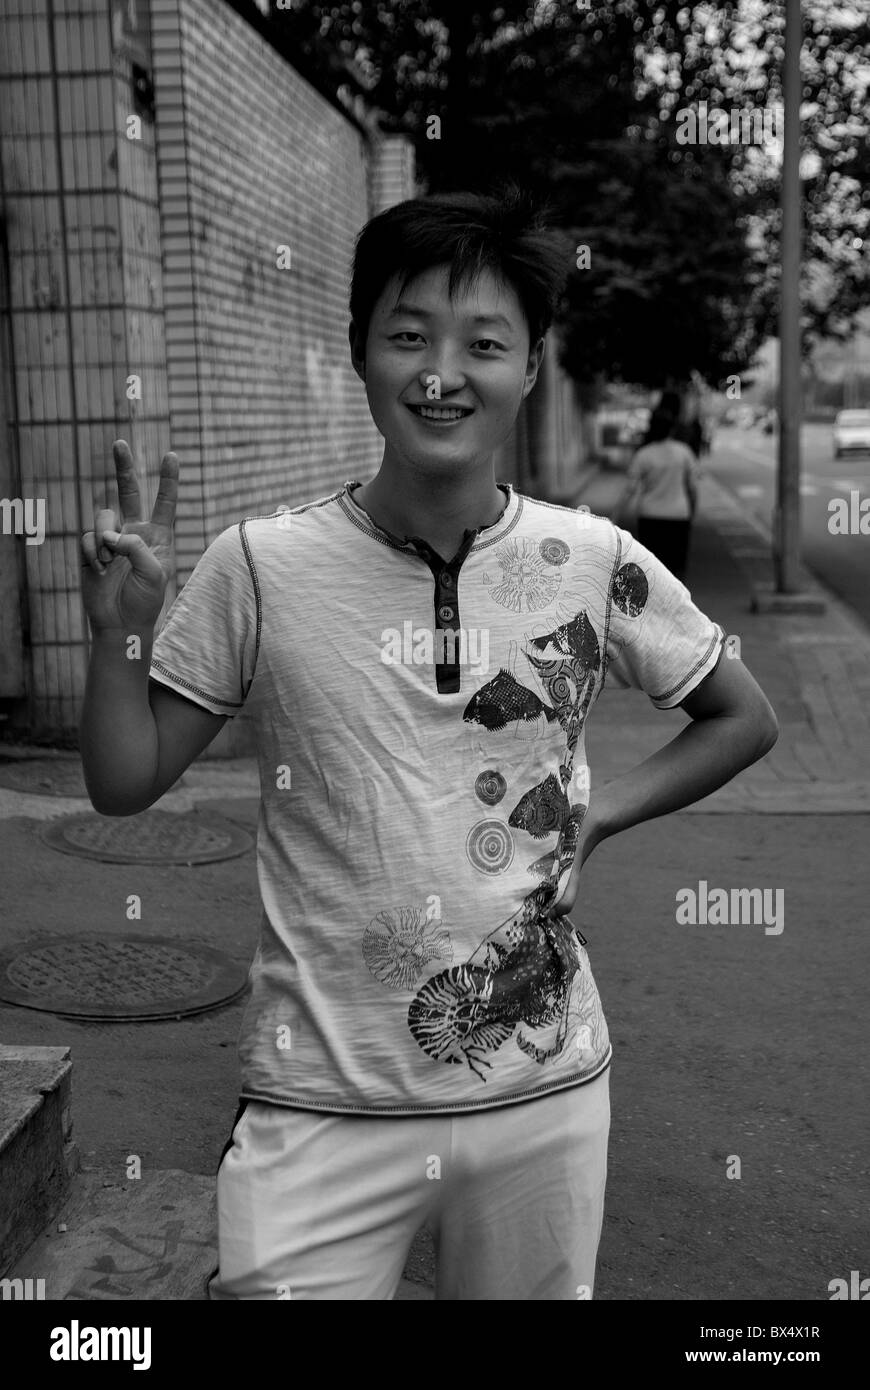 Chengdu - young chinese man posing for photo on the street - Stock Image